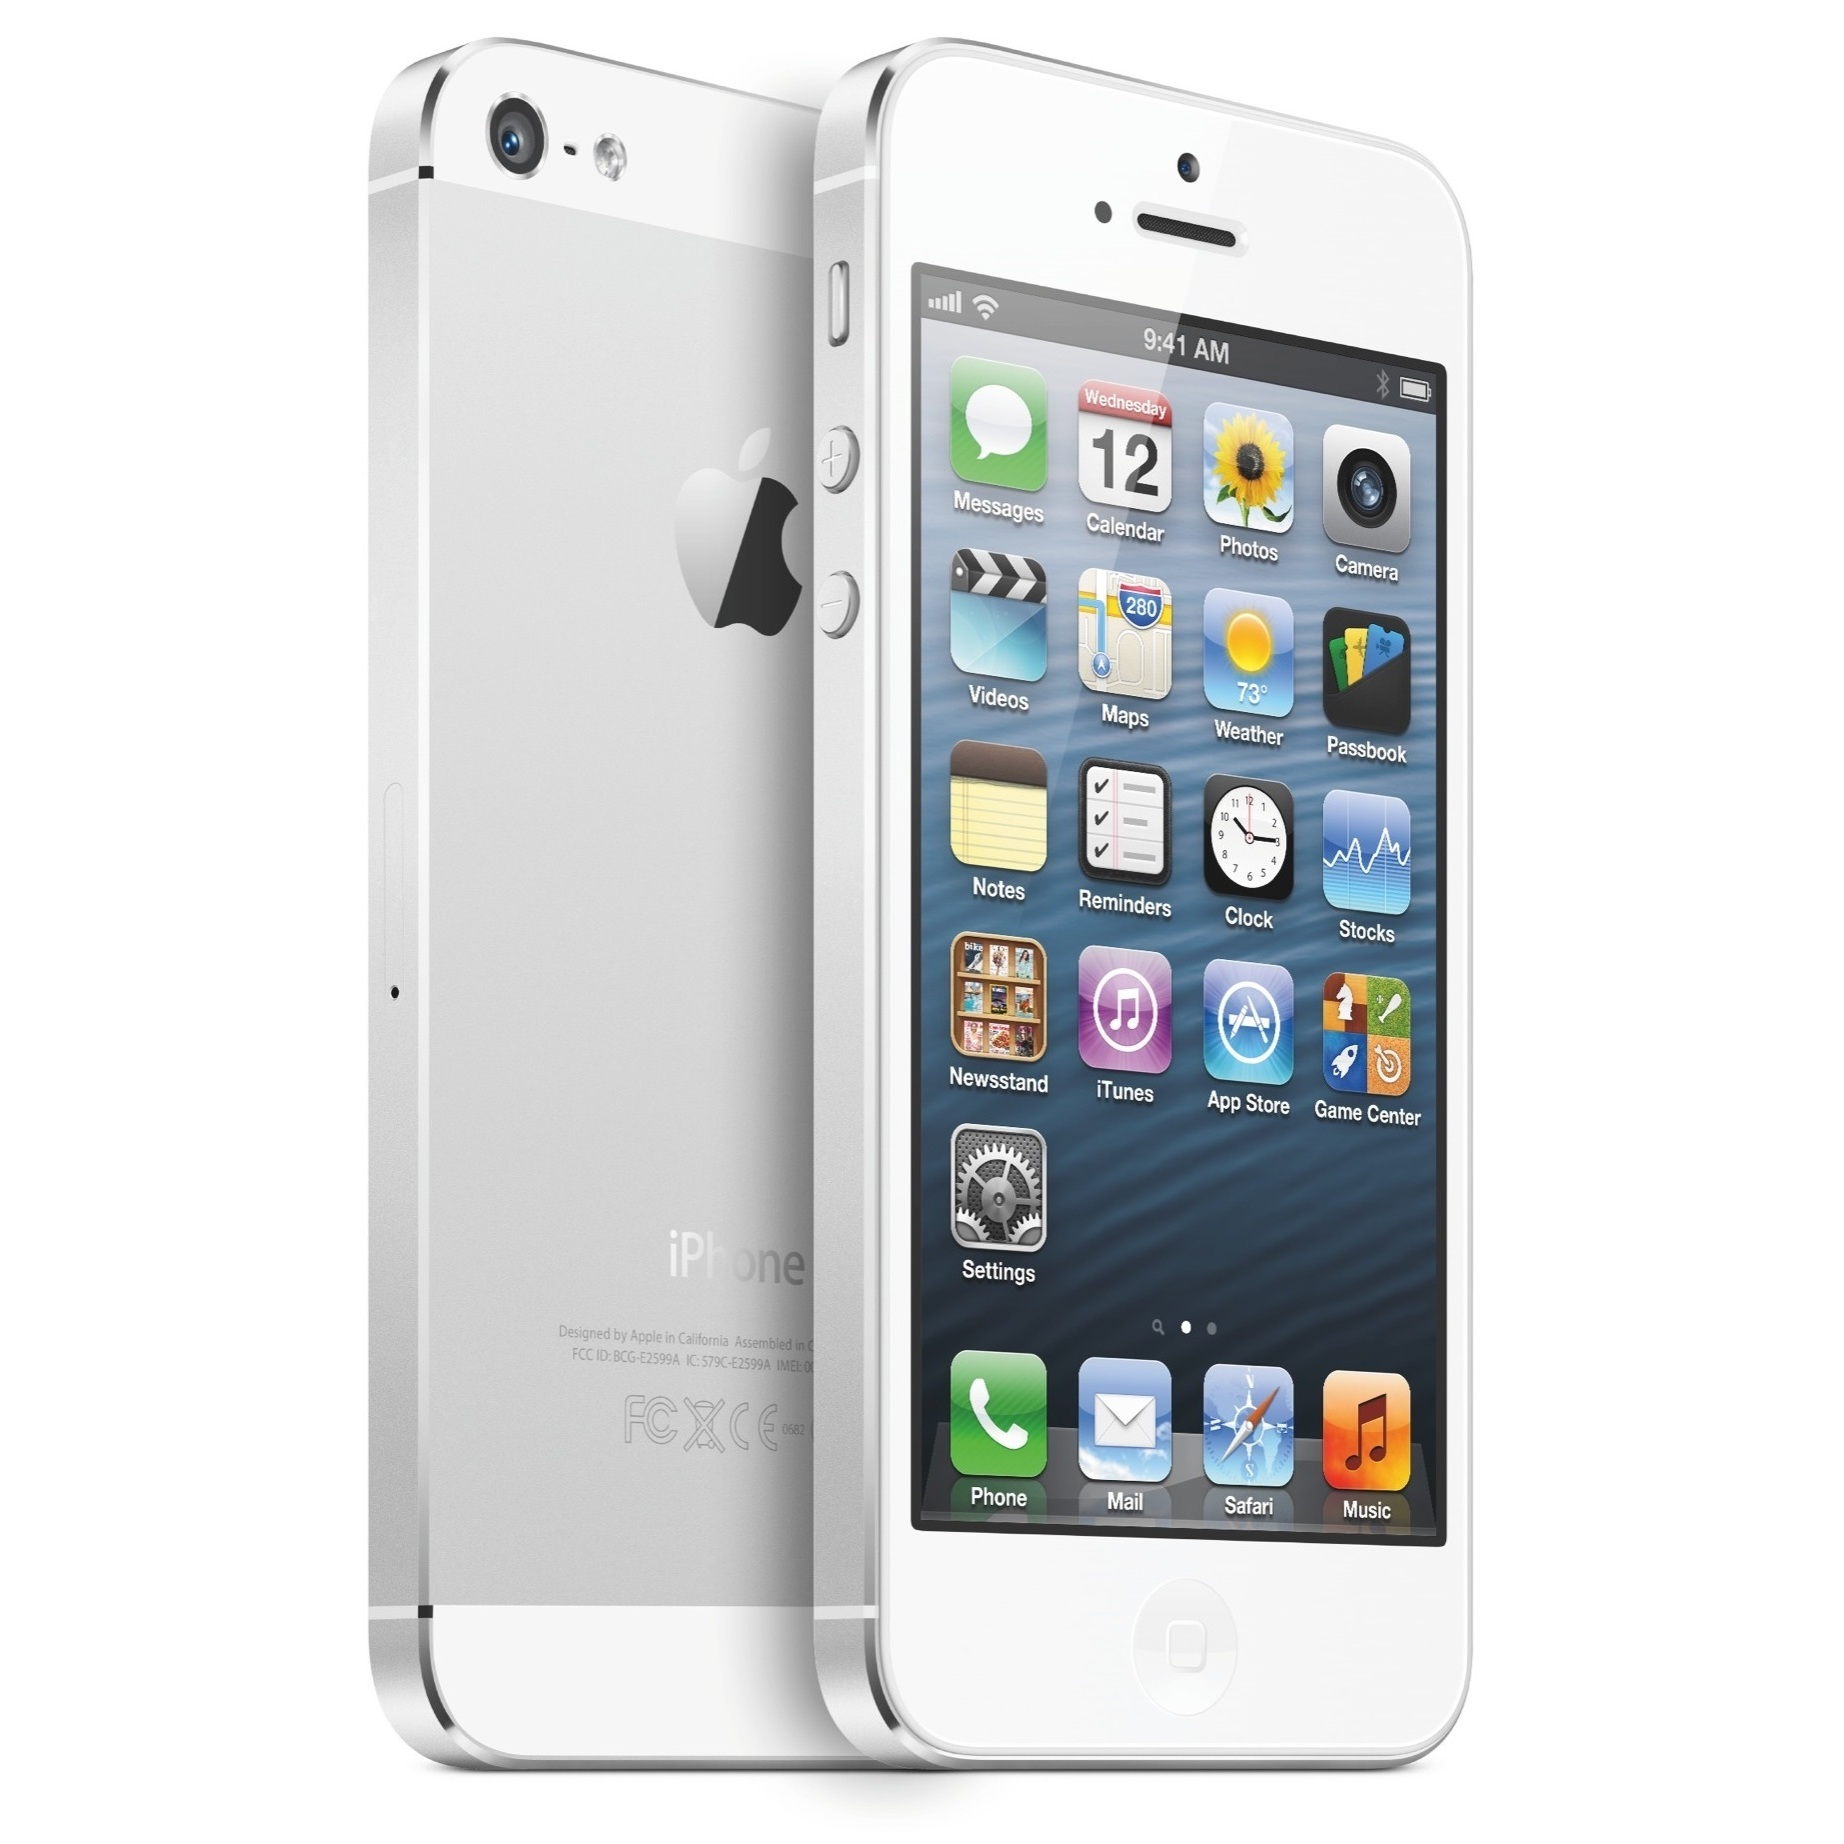 iphone 5s unlocked apple iphone 5s 64gb unlocked silver me303ll a 1045